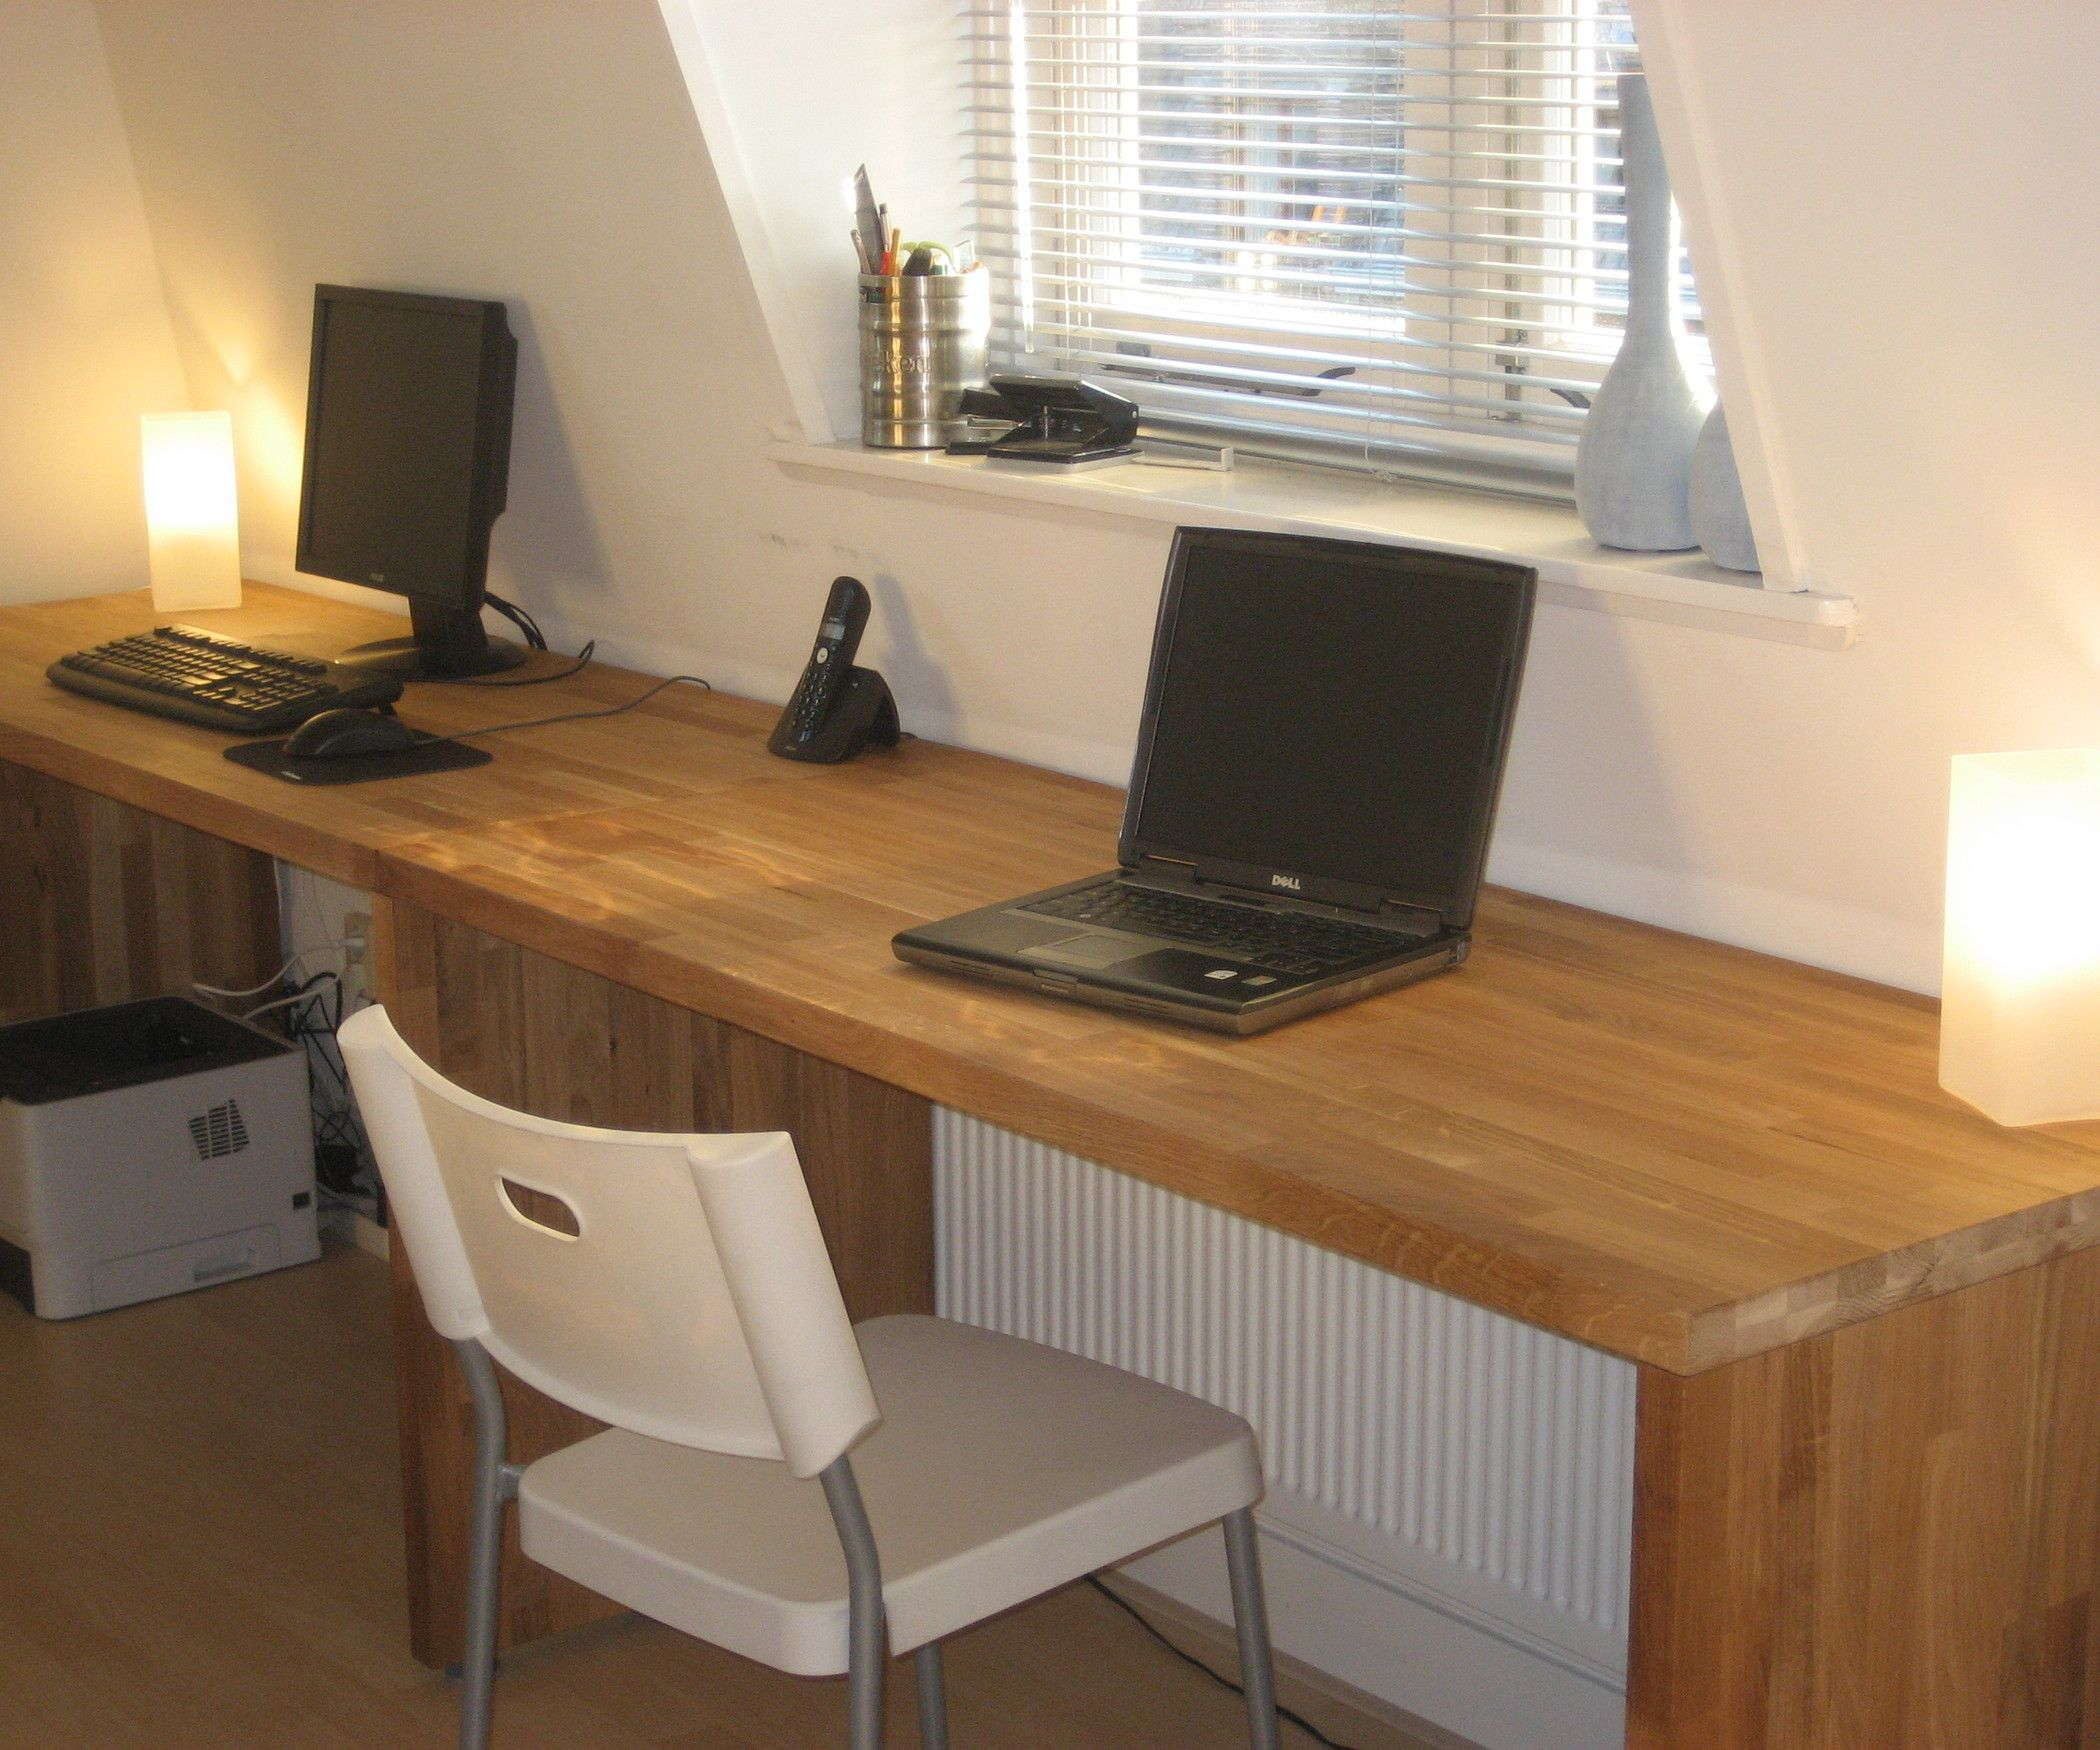 Ikea Kitchen Desk: Big Oak Desk From Kitchen Worktops